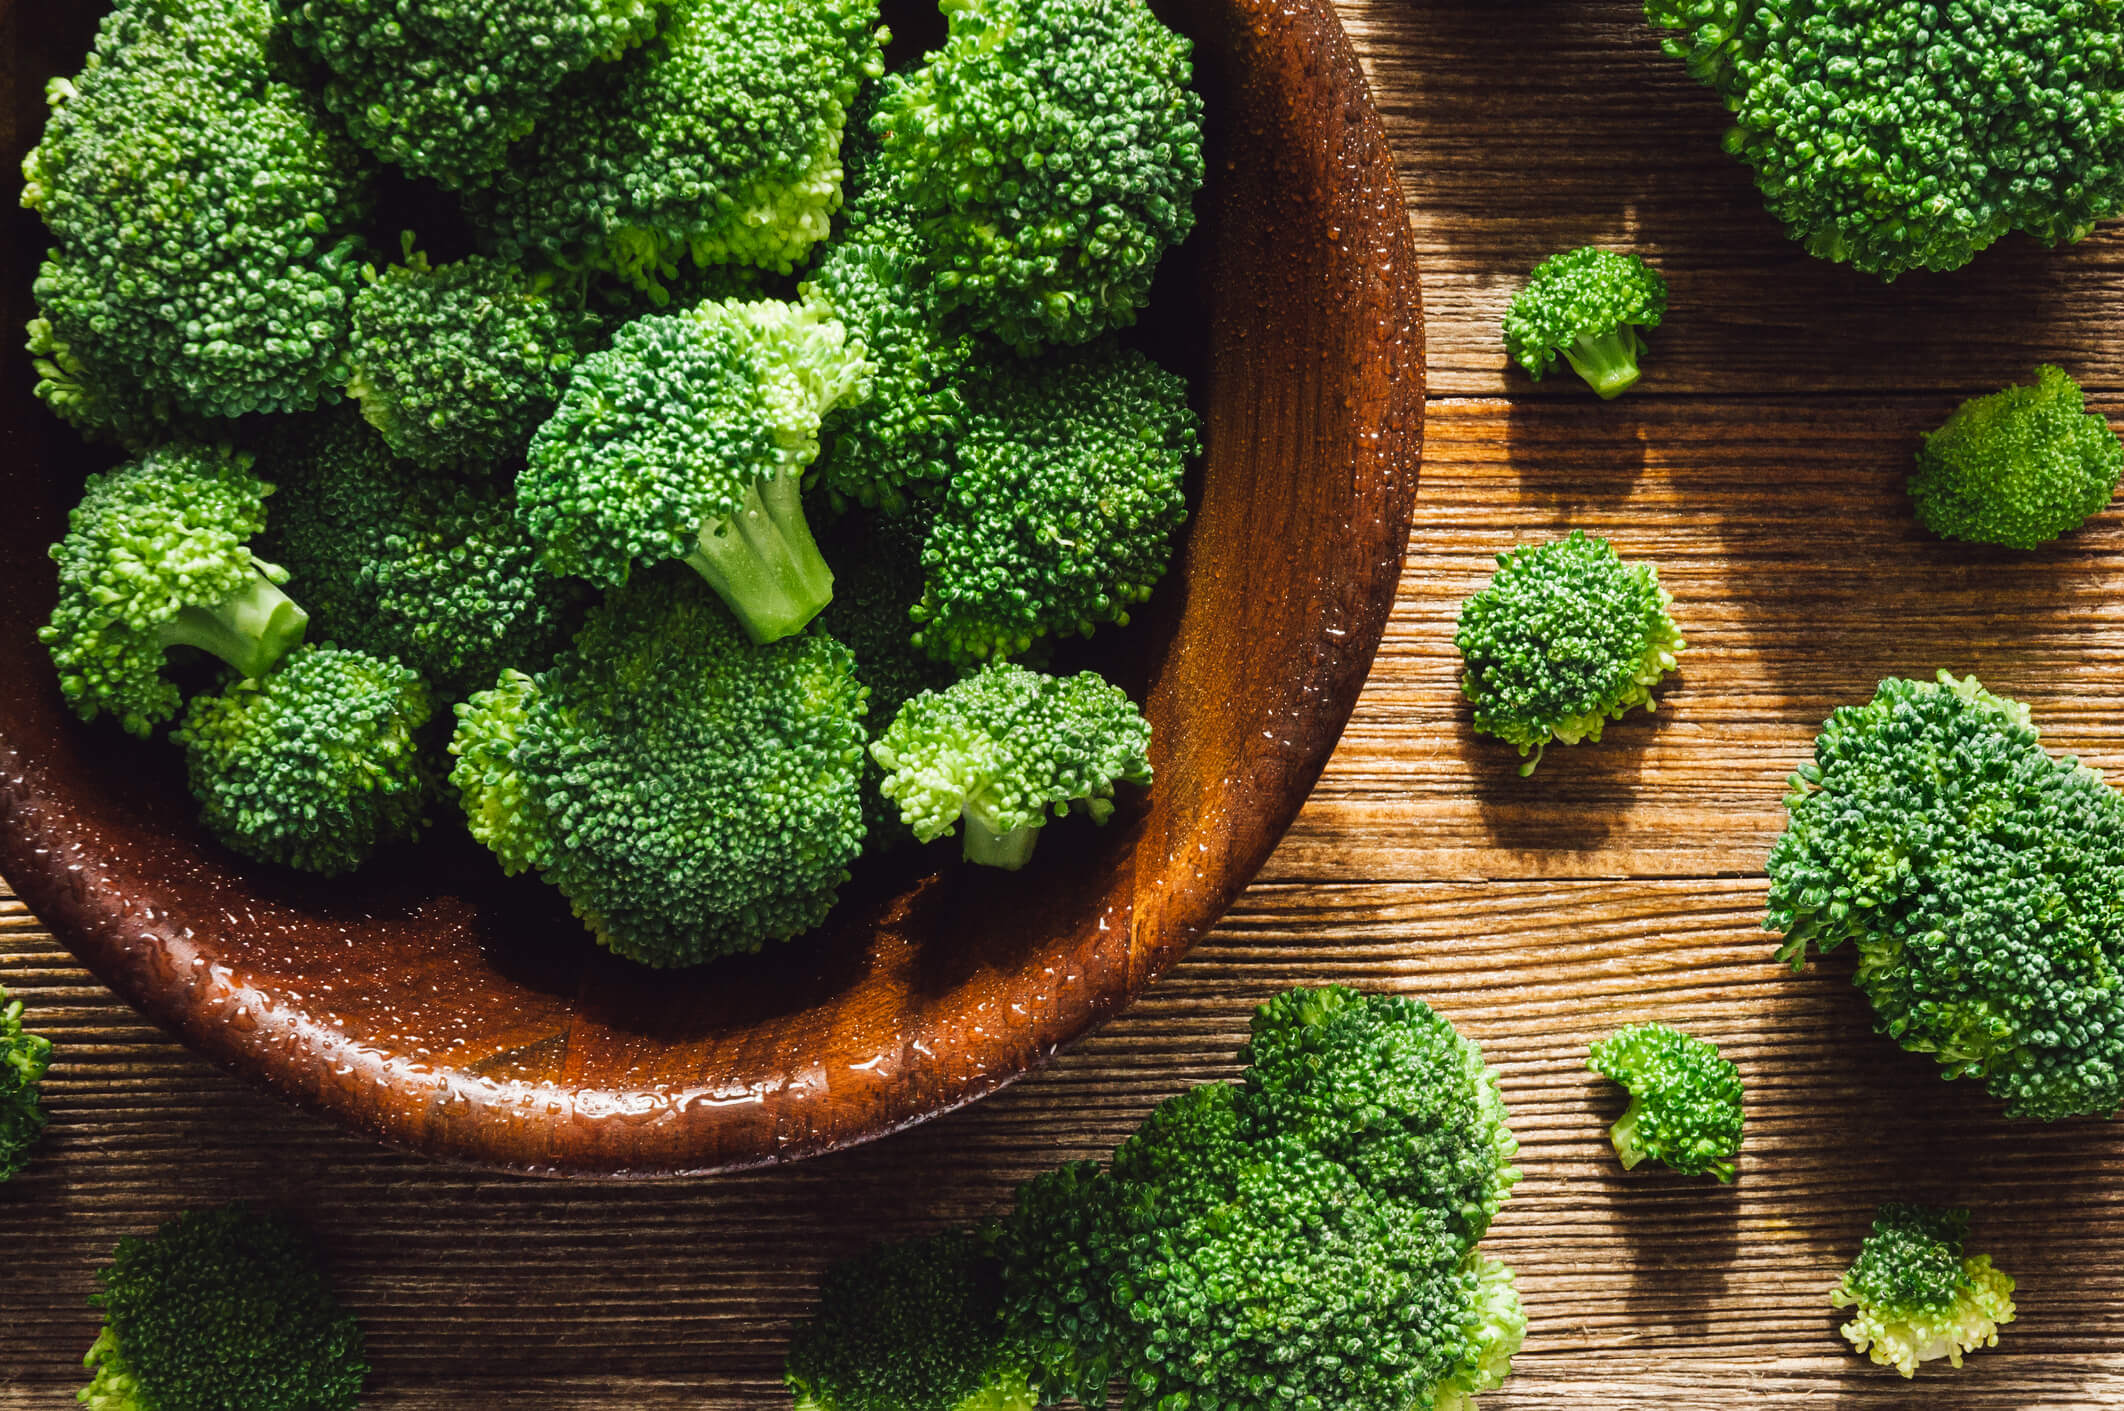 Spring vegetables and fruits: broccoli